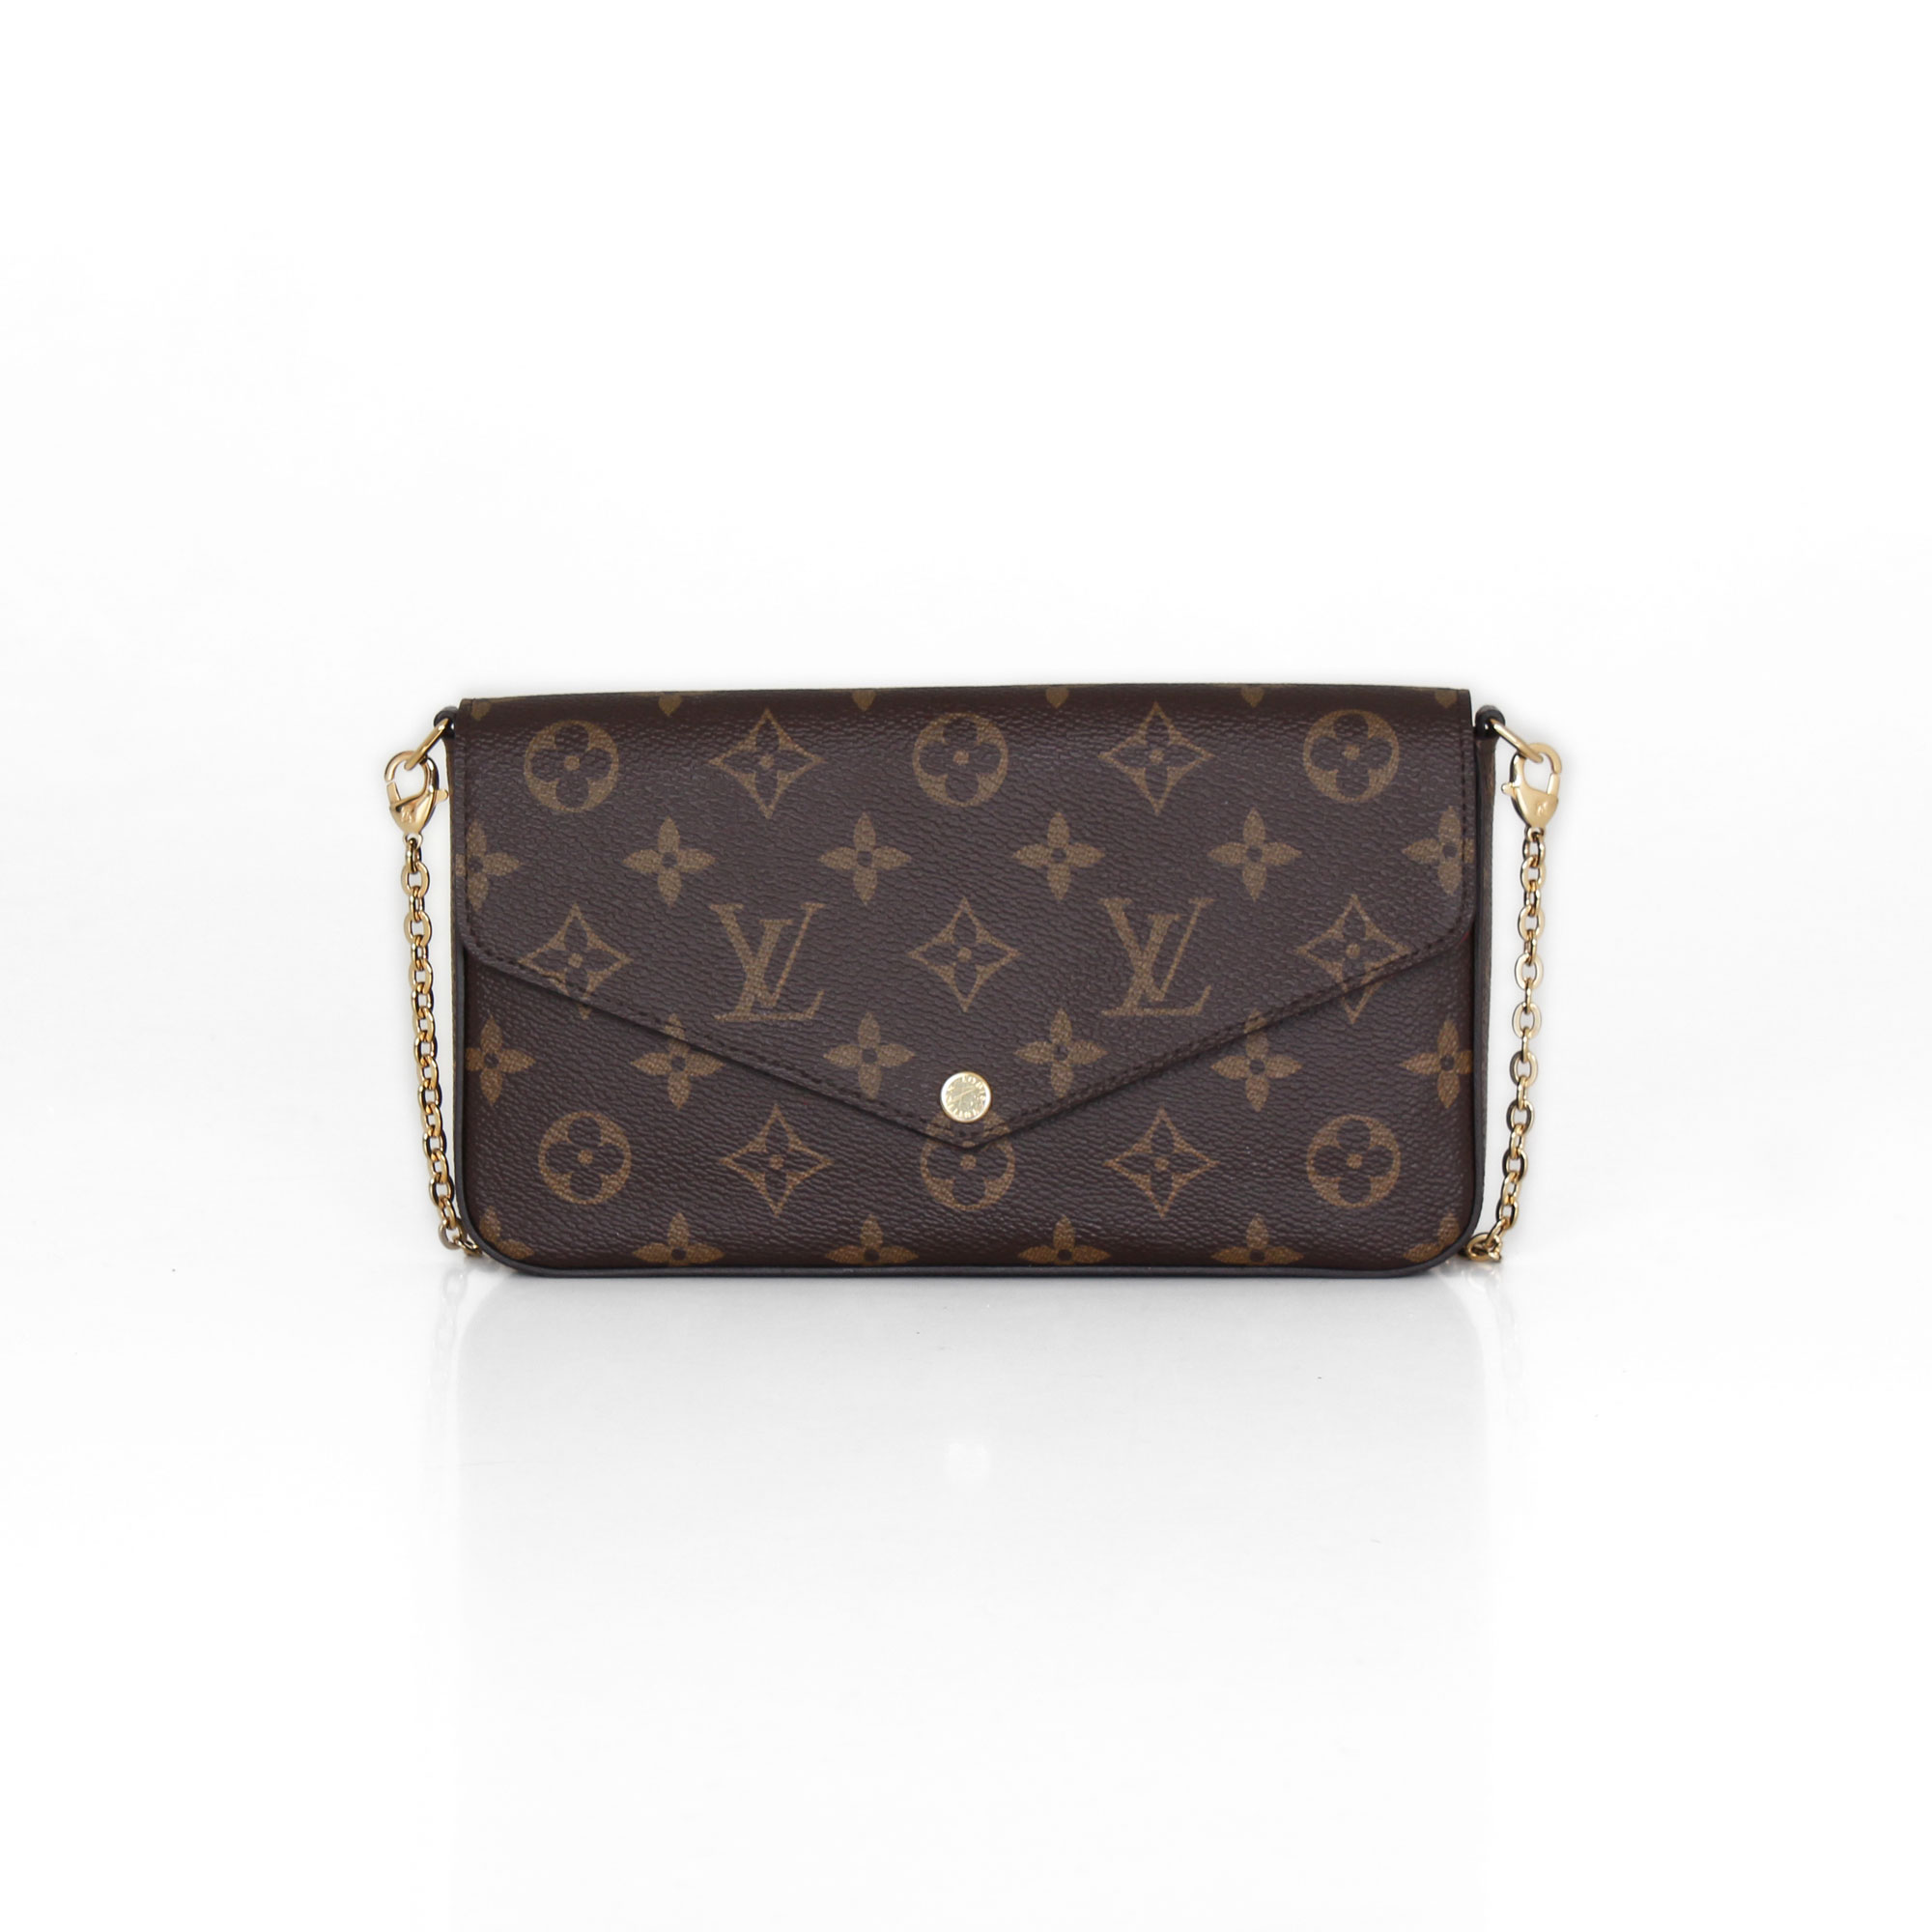 Sell Luxury Bag Louis Vuitton F 233 Lice Pochette Cbl Bags